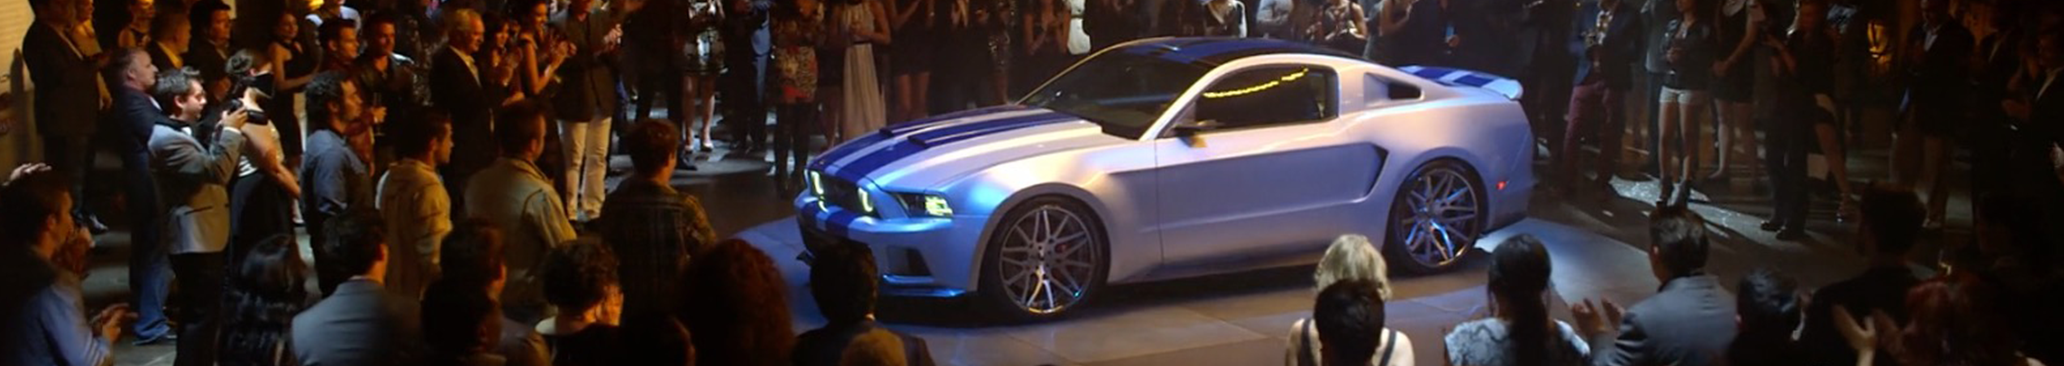 Shelby, Need for speed, for, mustang Concave brand tracking, product placement, brands, movies, entertainment marketing, branded integration, integration marketing, analysis, valuation, metrics, measurement, concave,